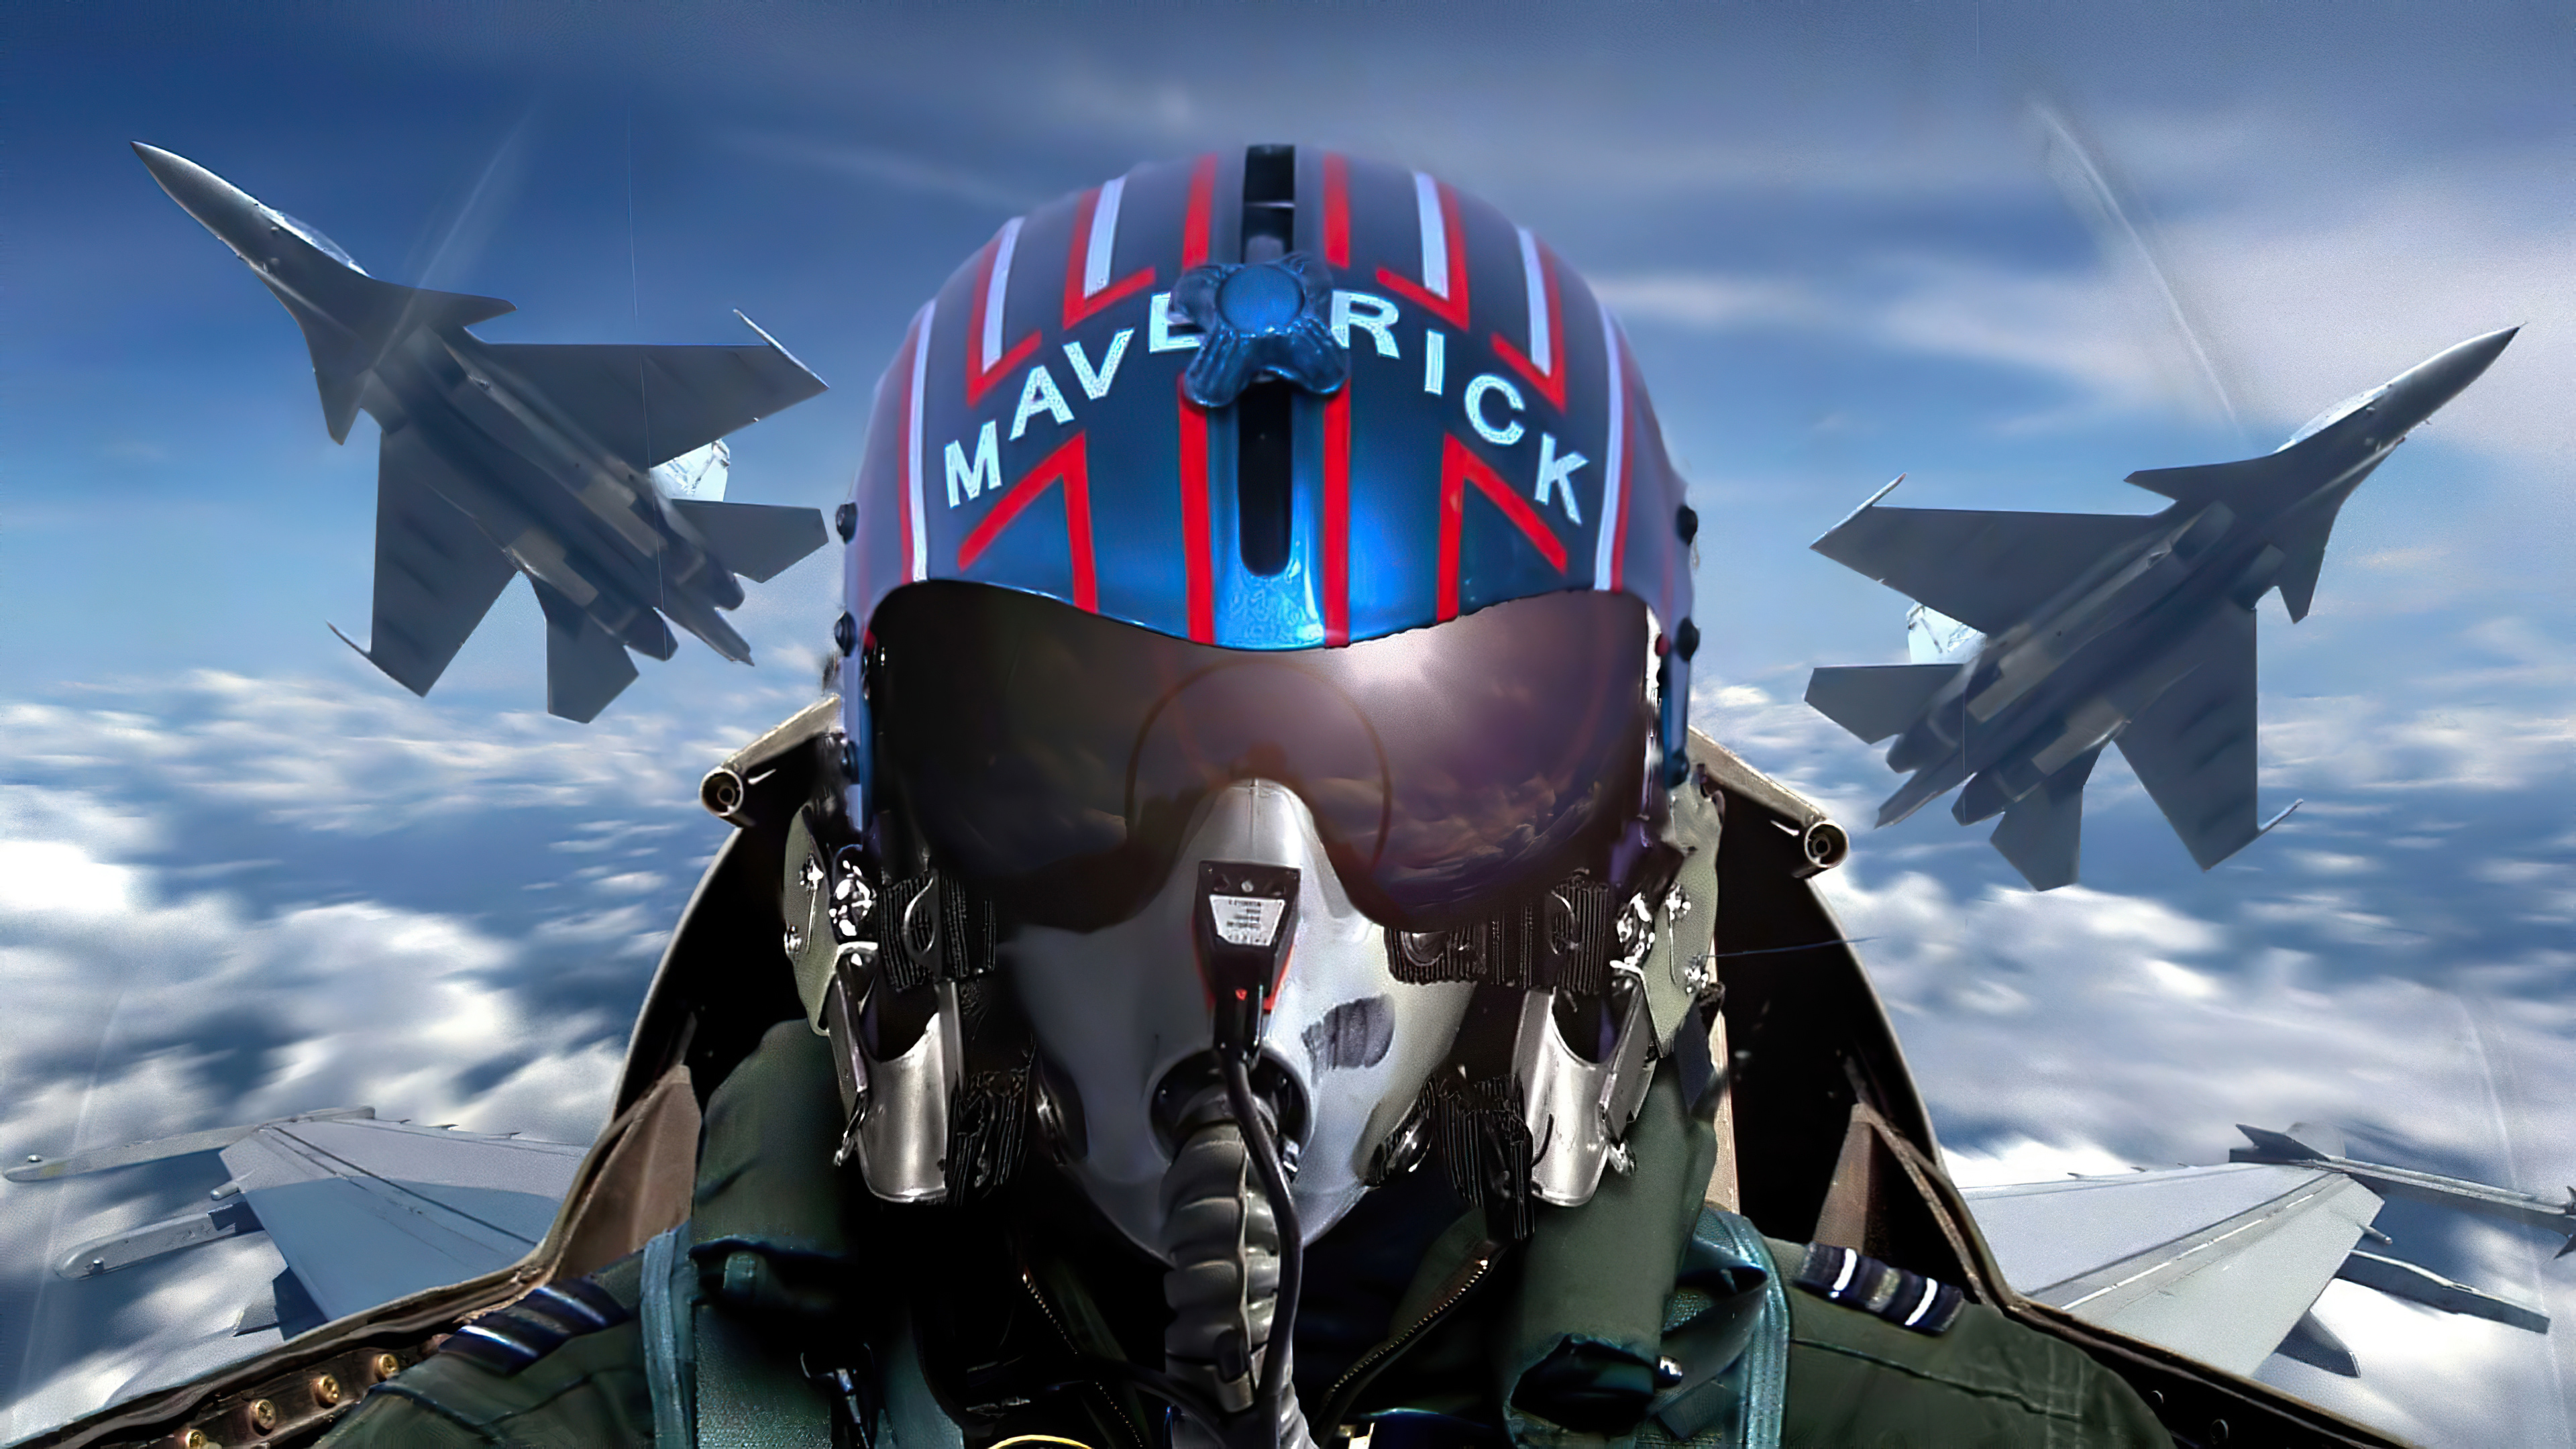 Top Gun Maverick Tom Cruise 4k Hd Movies 4k Wallpapers Images Backgrounds Photos And Pictures